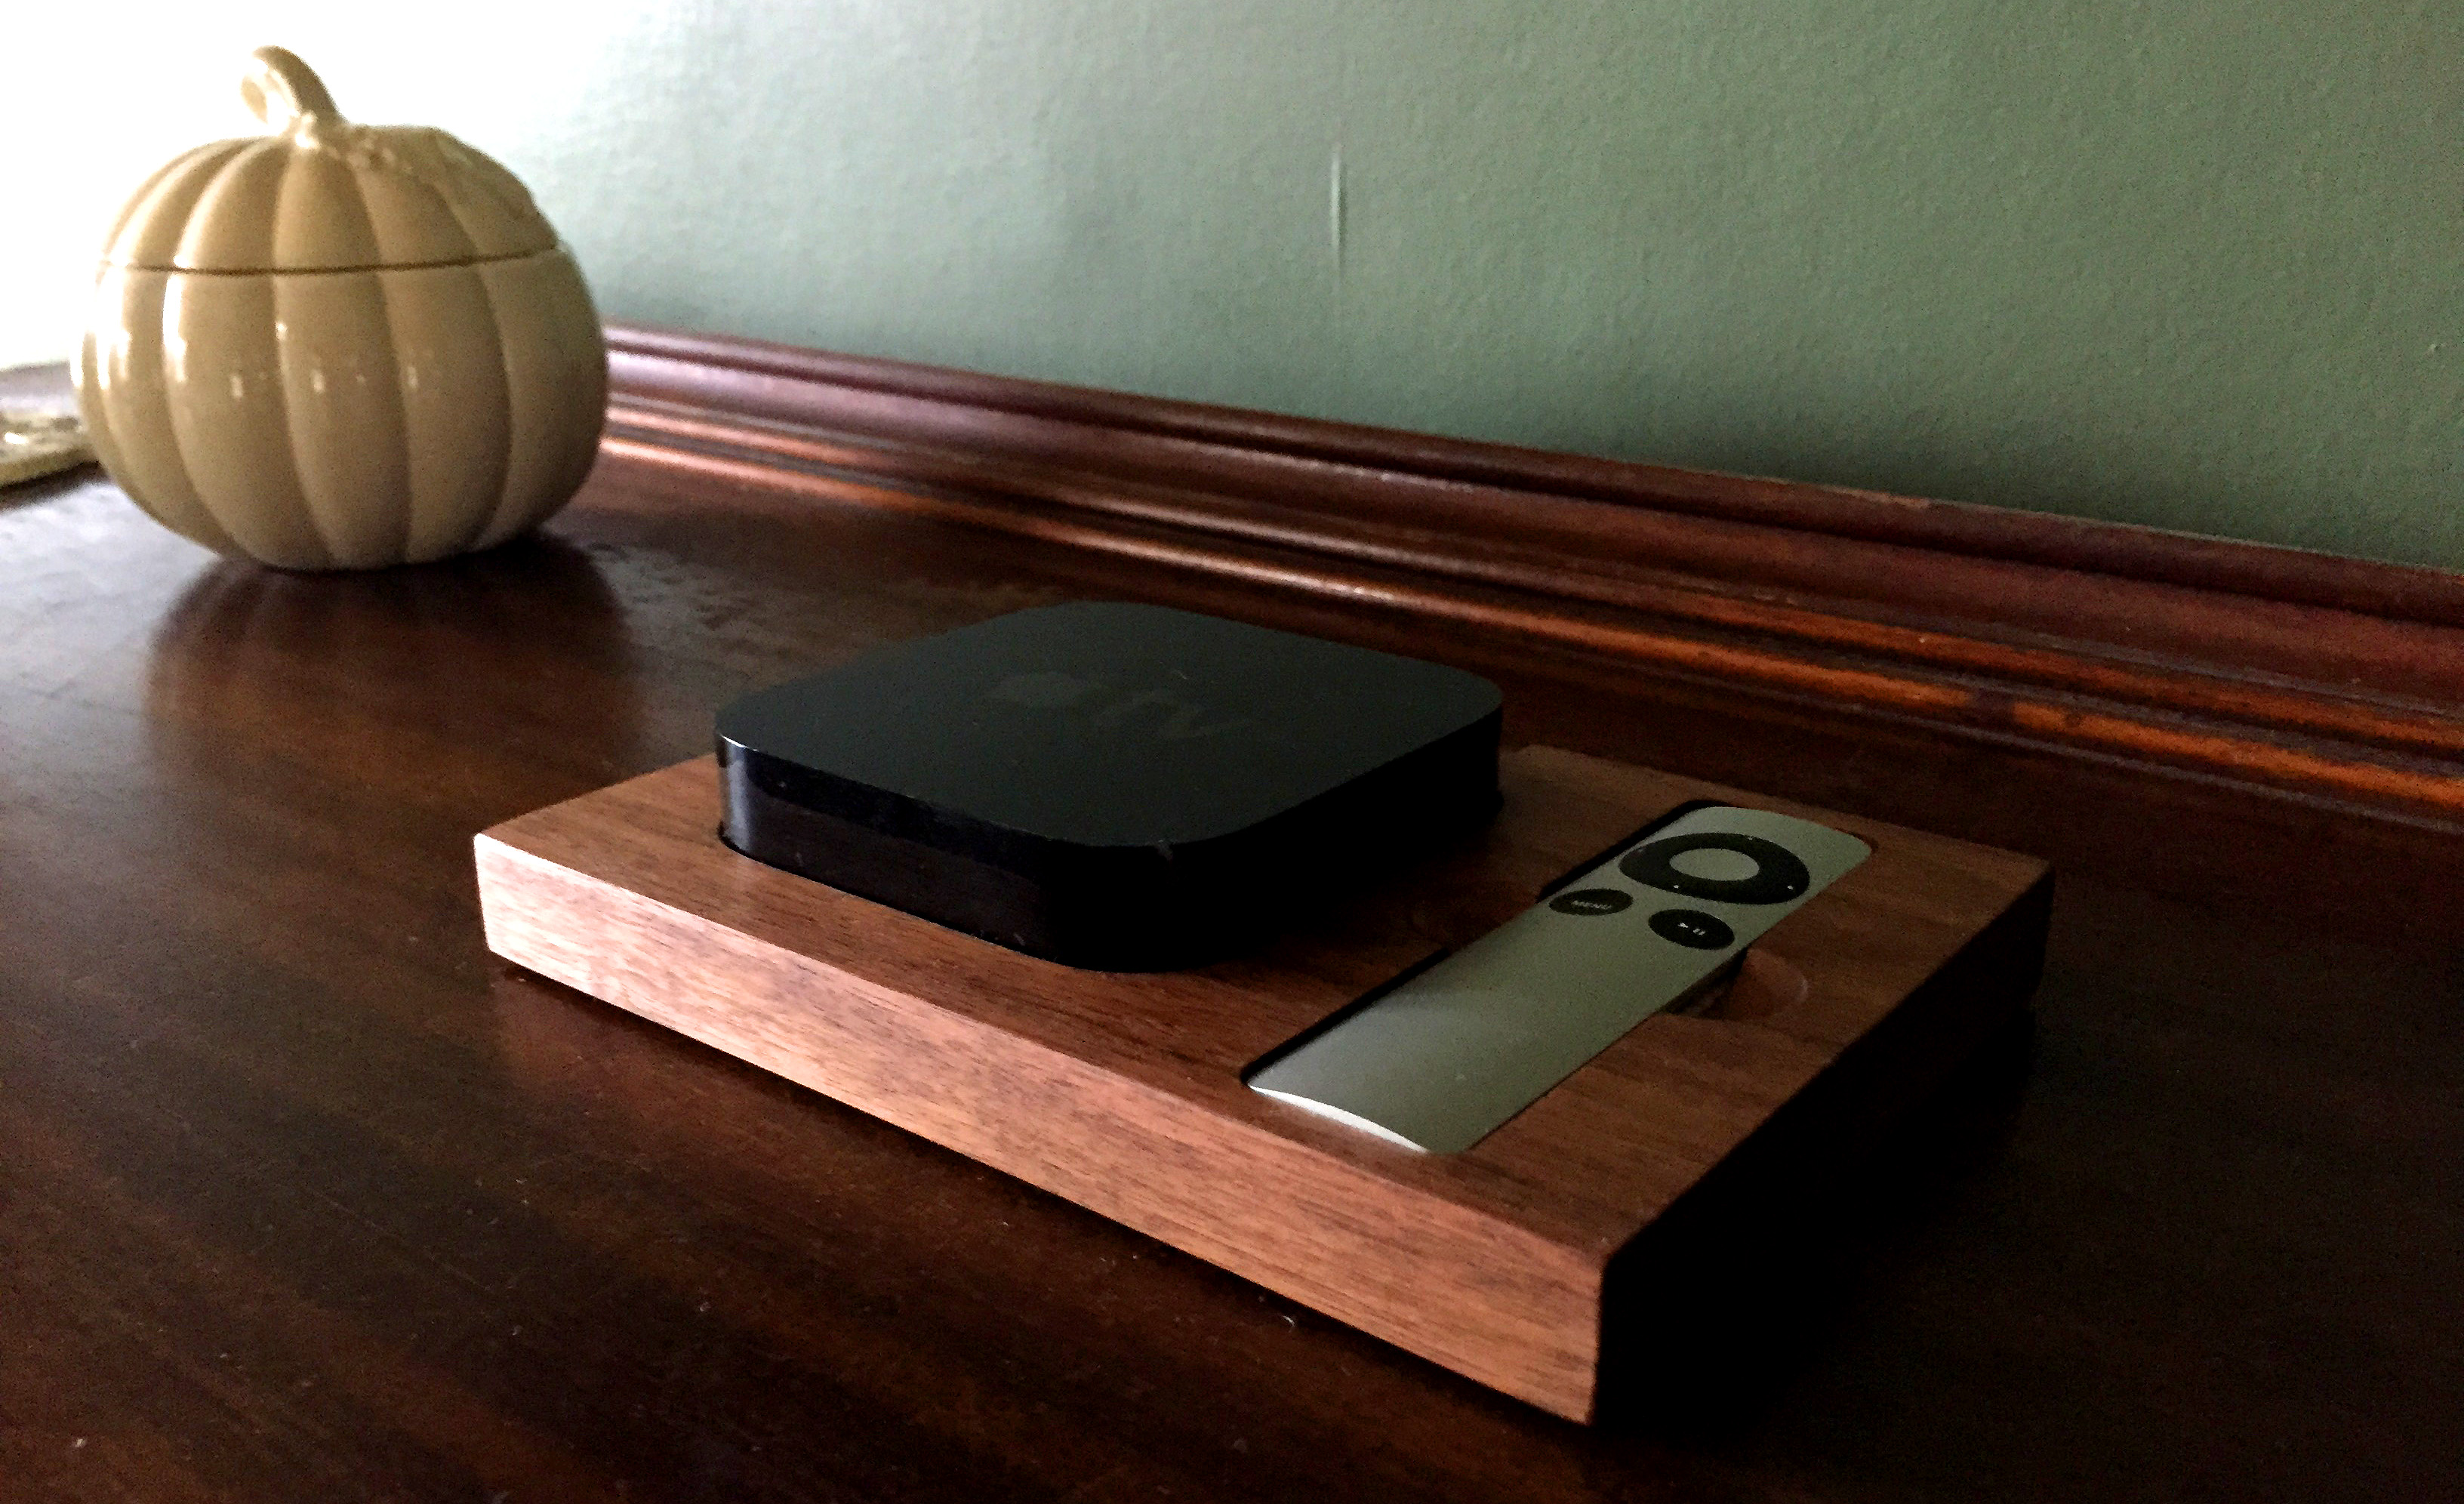 tinsel-and-timber-apple-tv-tray